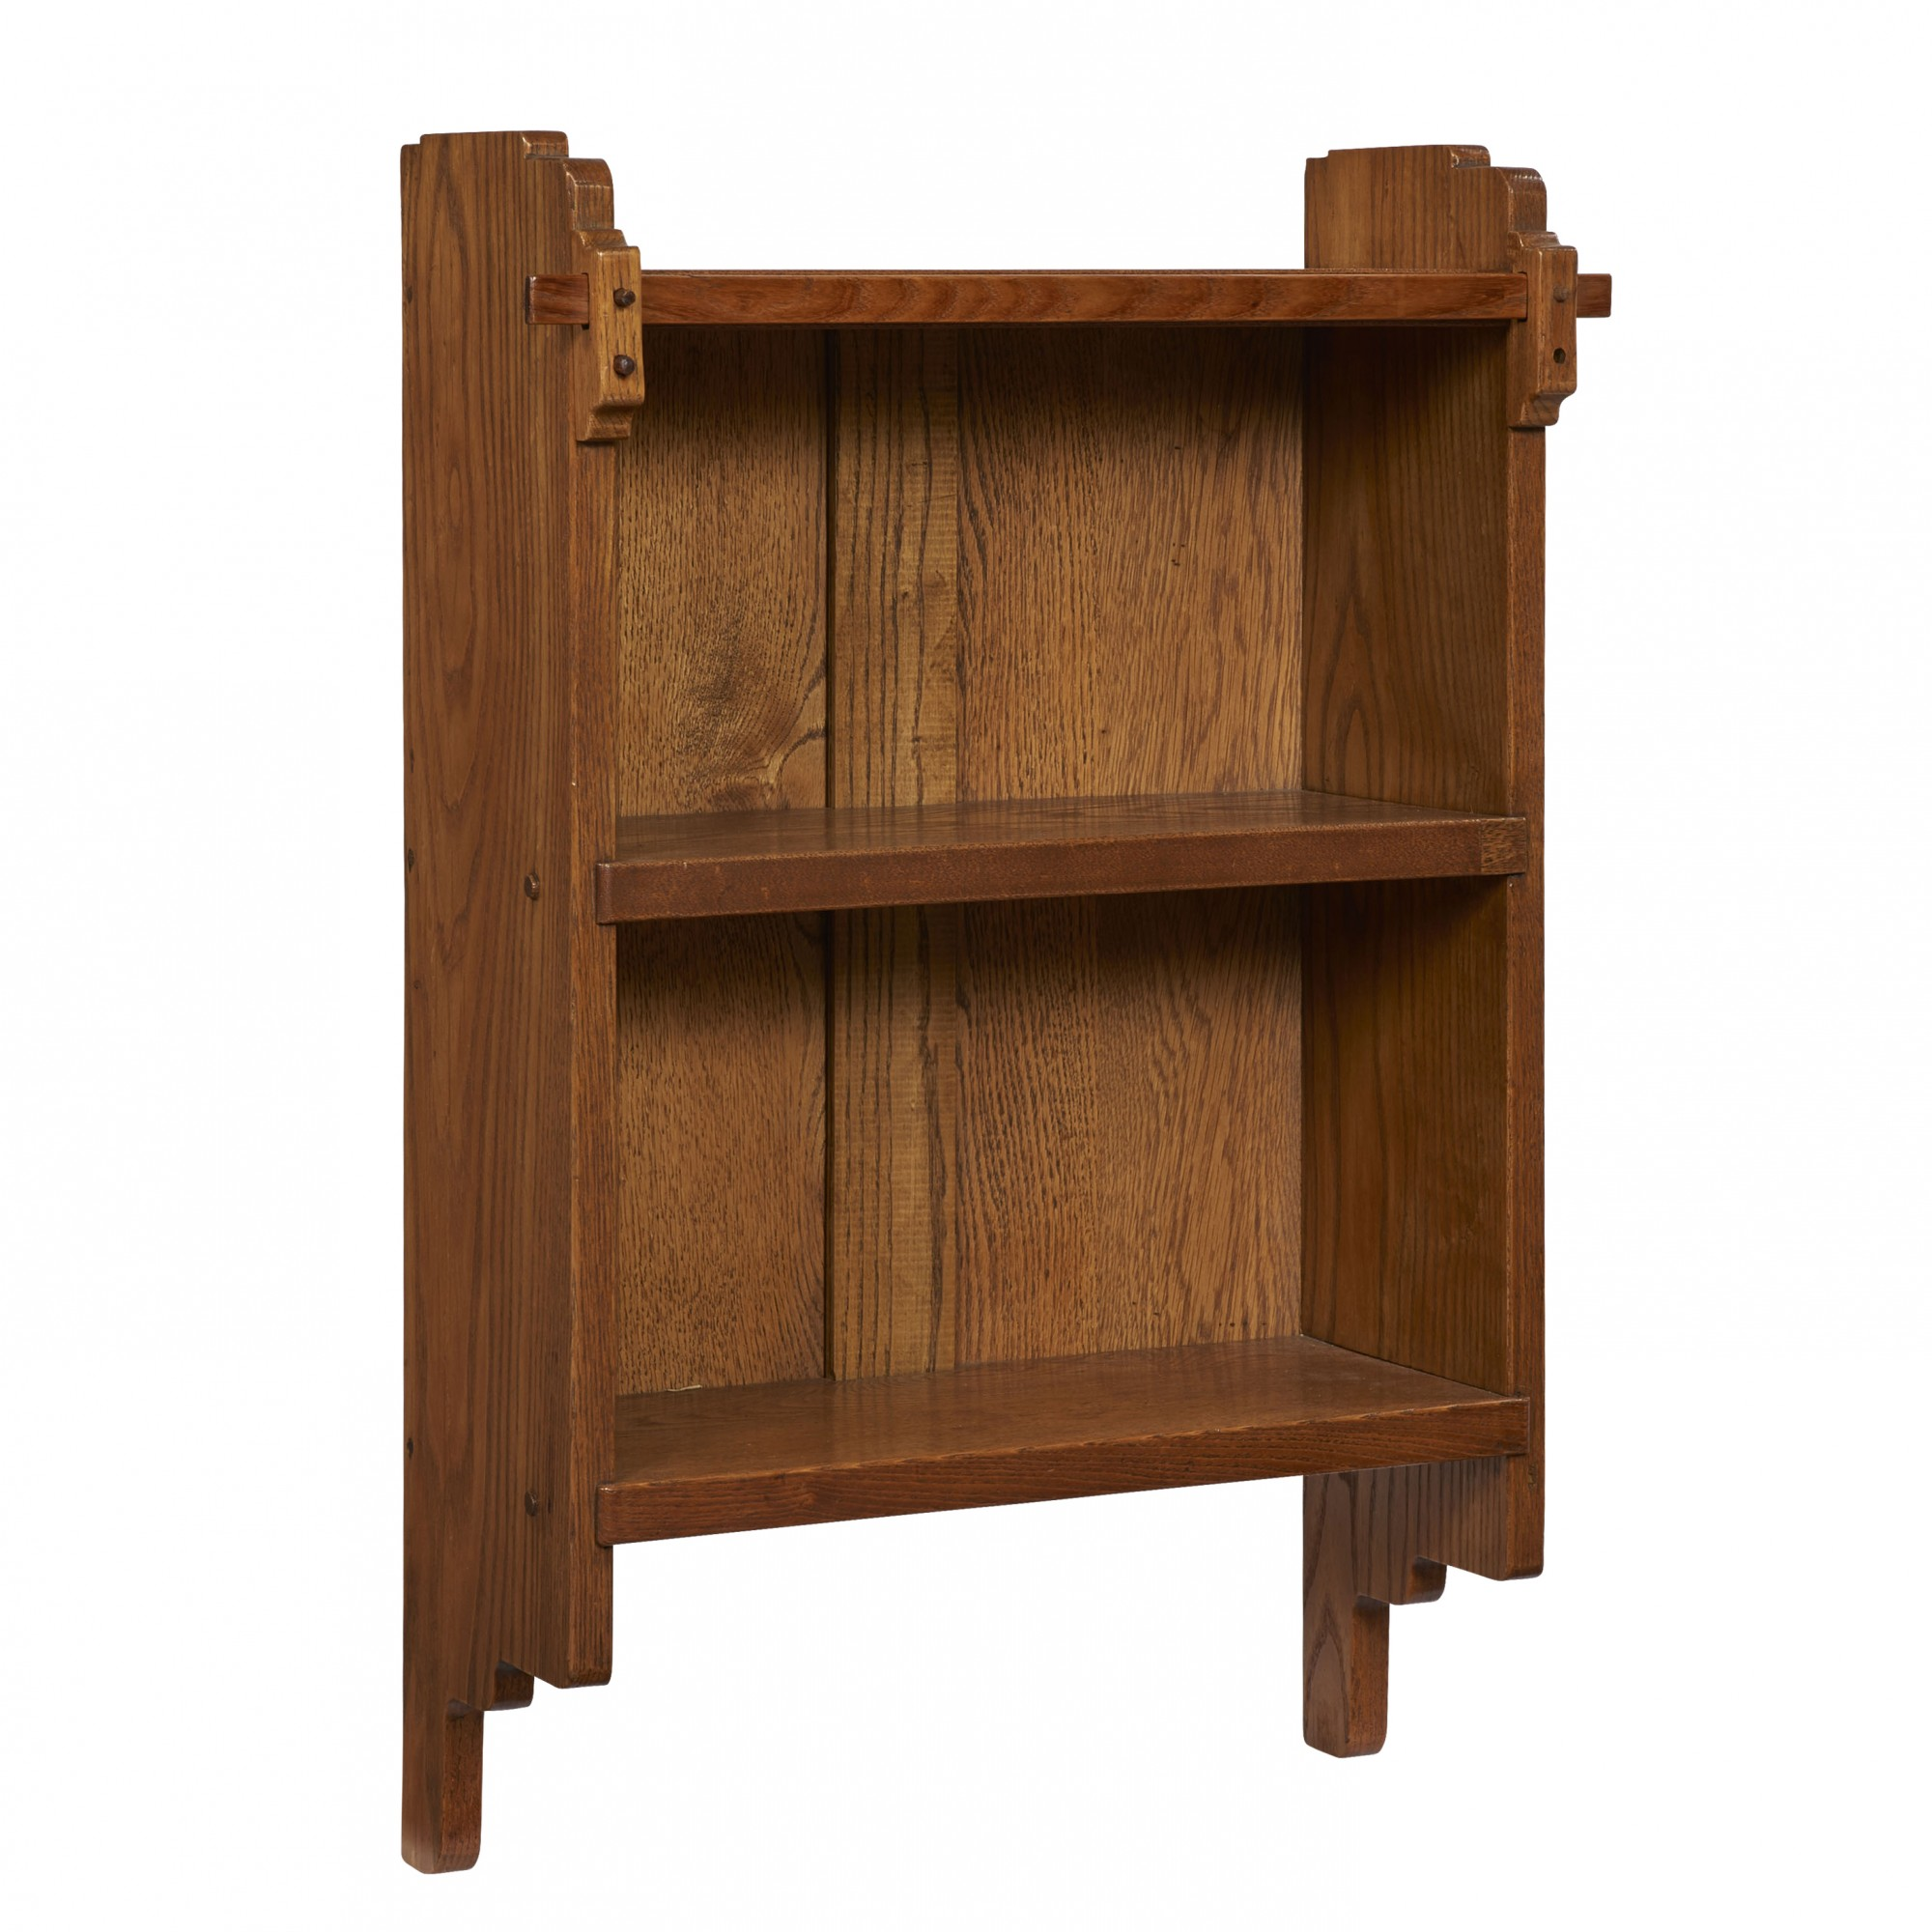 Charles Sumner Greene Hanging Shelf